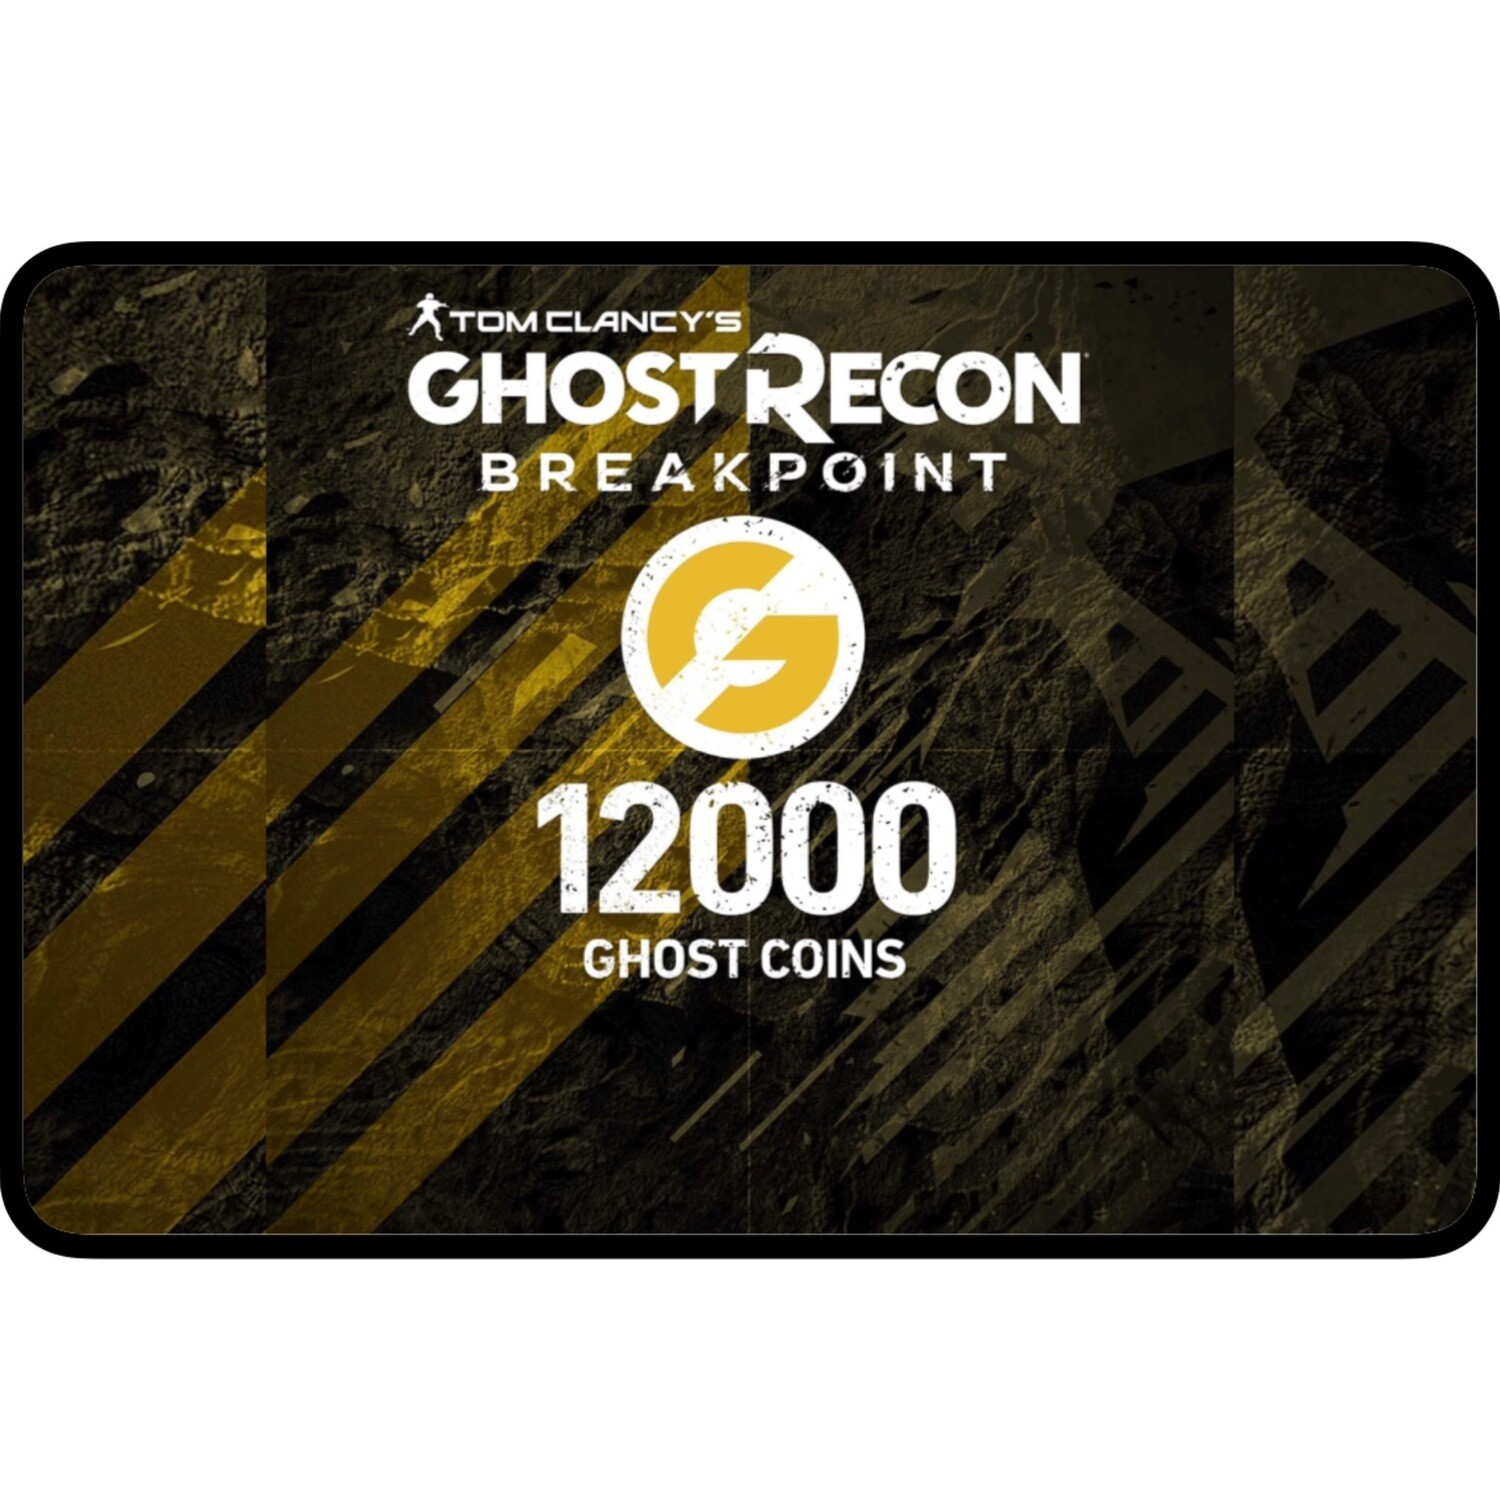 Tom Clancy's: Ghost Recon Breakpoint: 12000 Ghost Coins for PS4